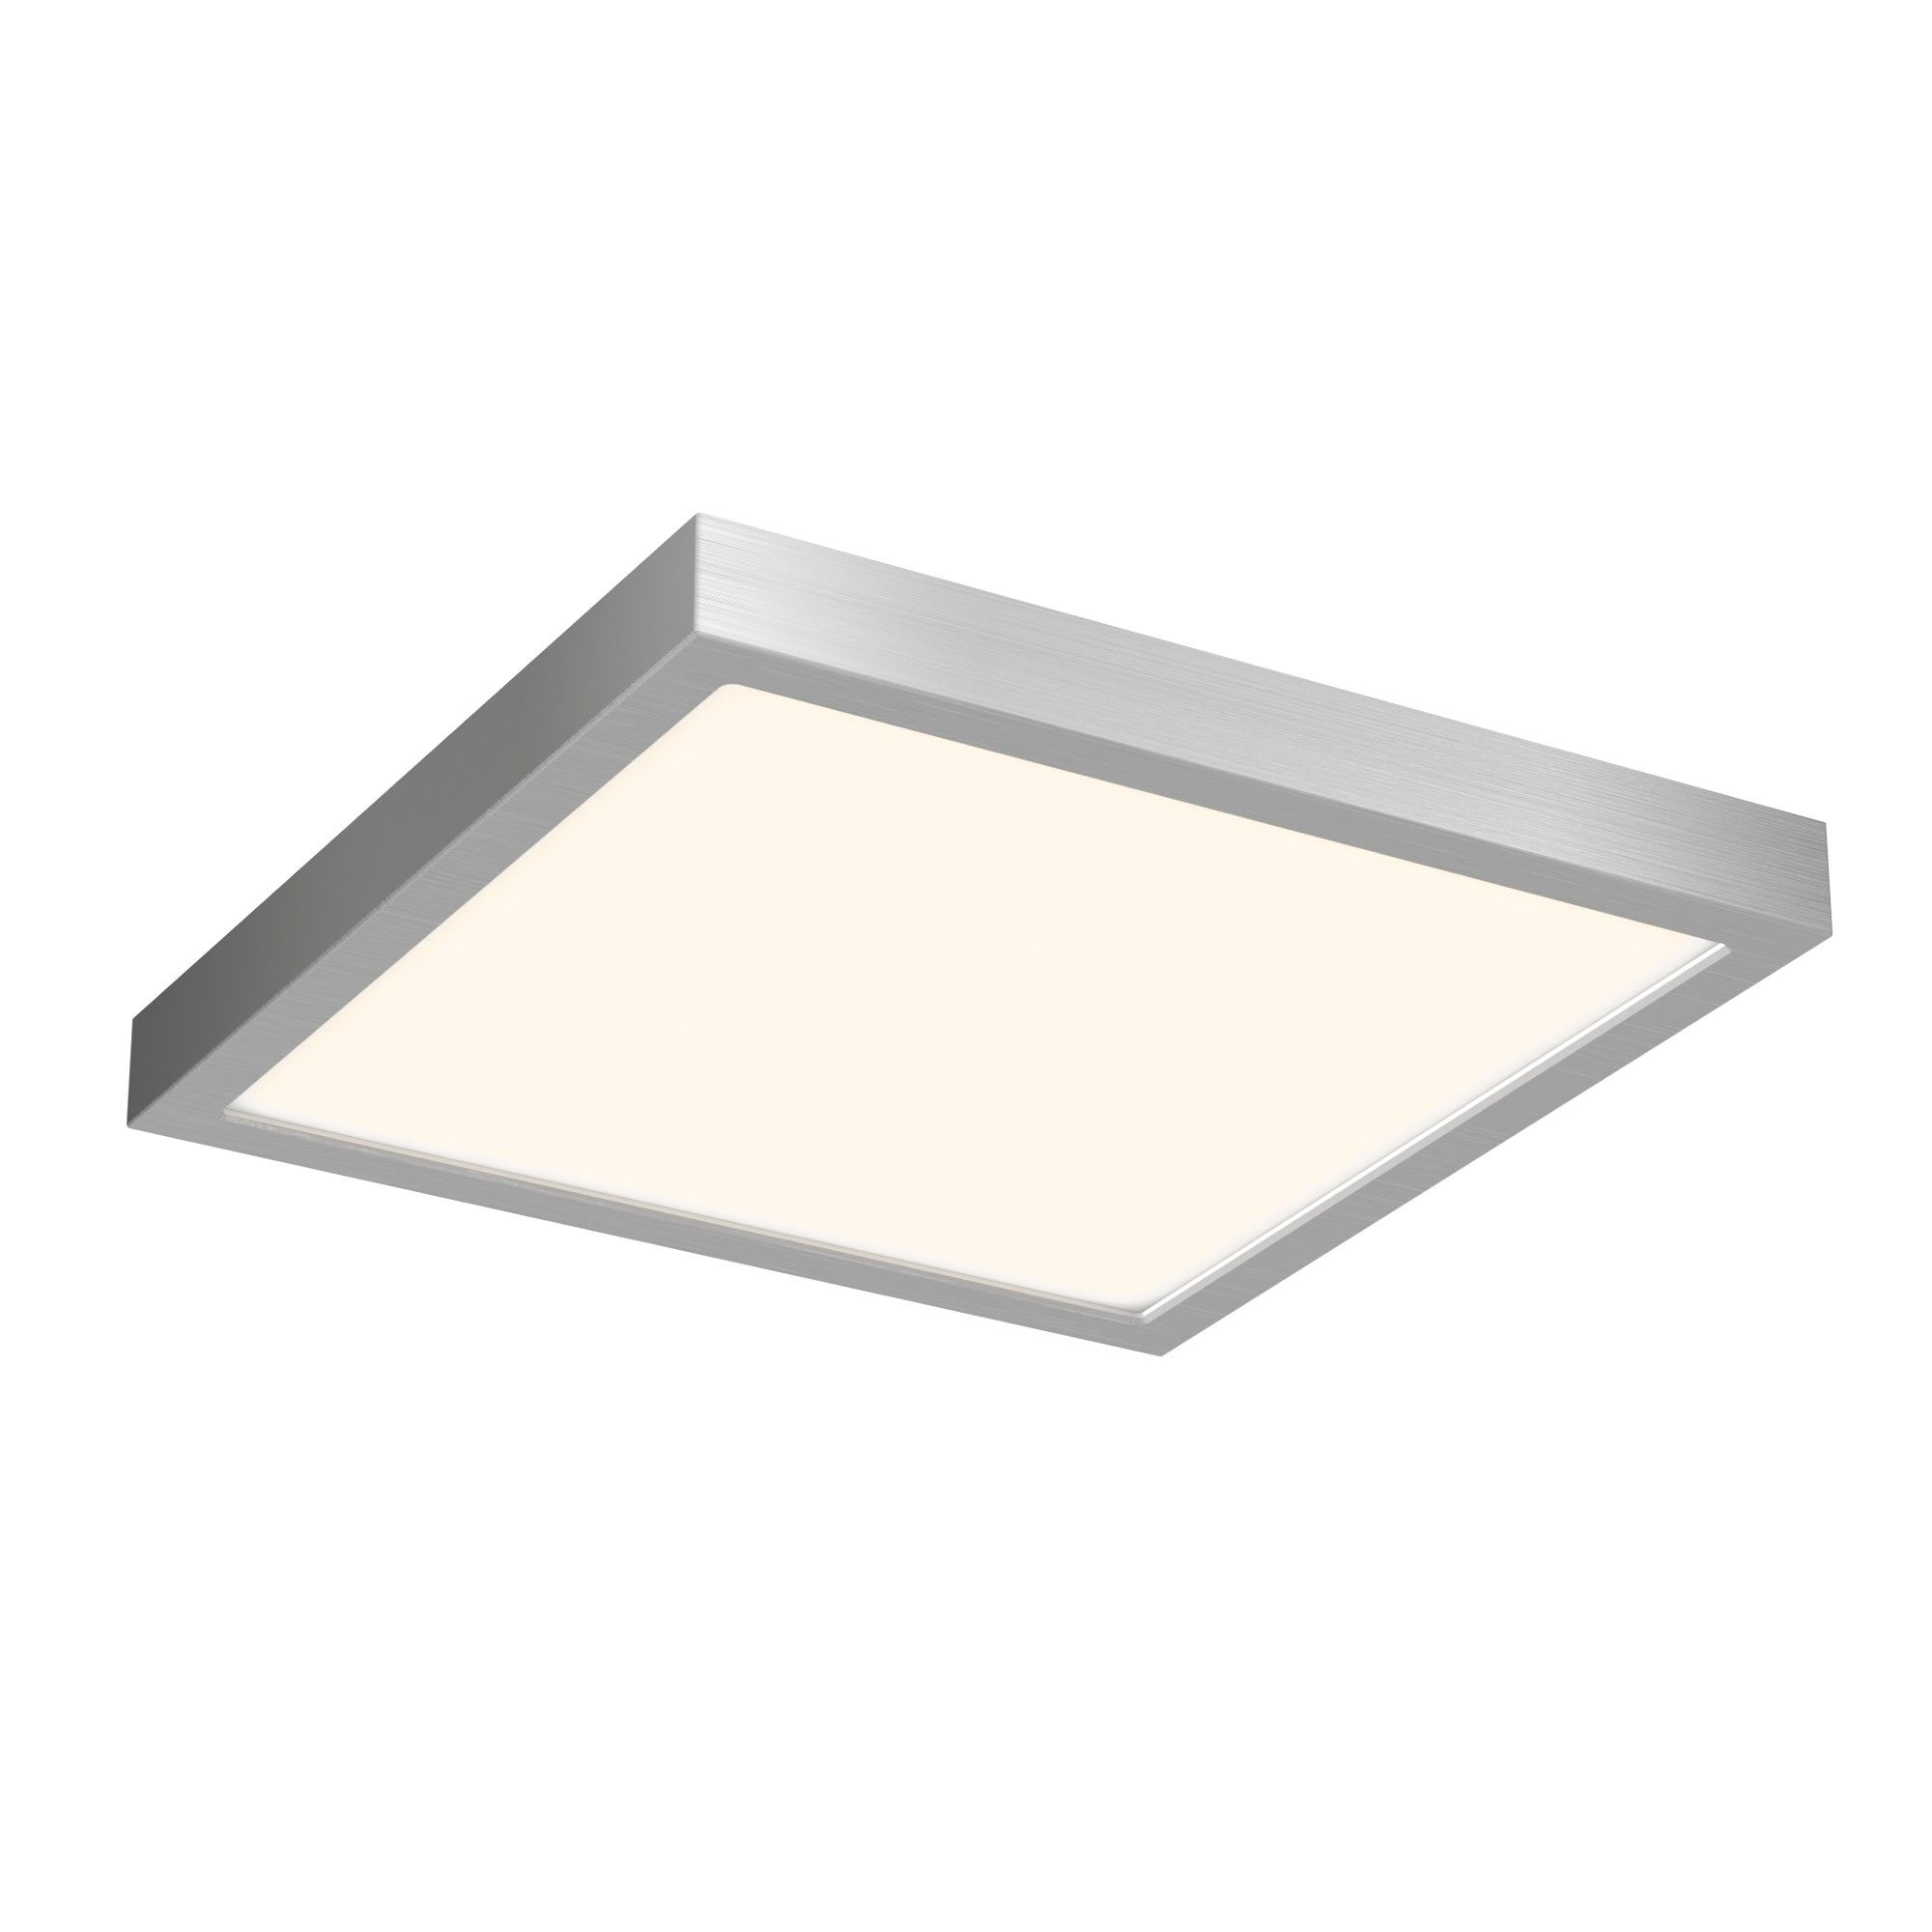 Dals Lighting Cfledsq10 Indoor Outdoor 10 Wide Led Square Flush Mount Ceiling Fixture Satin Nickel Led Flush Mount Flush Mount Ceiling Lights Ceiling Lights